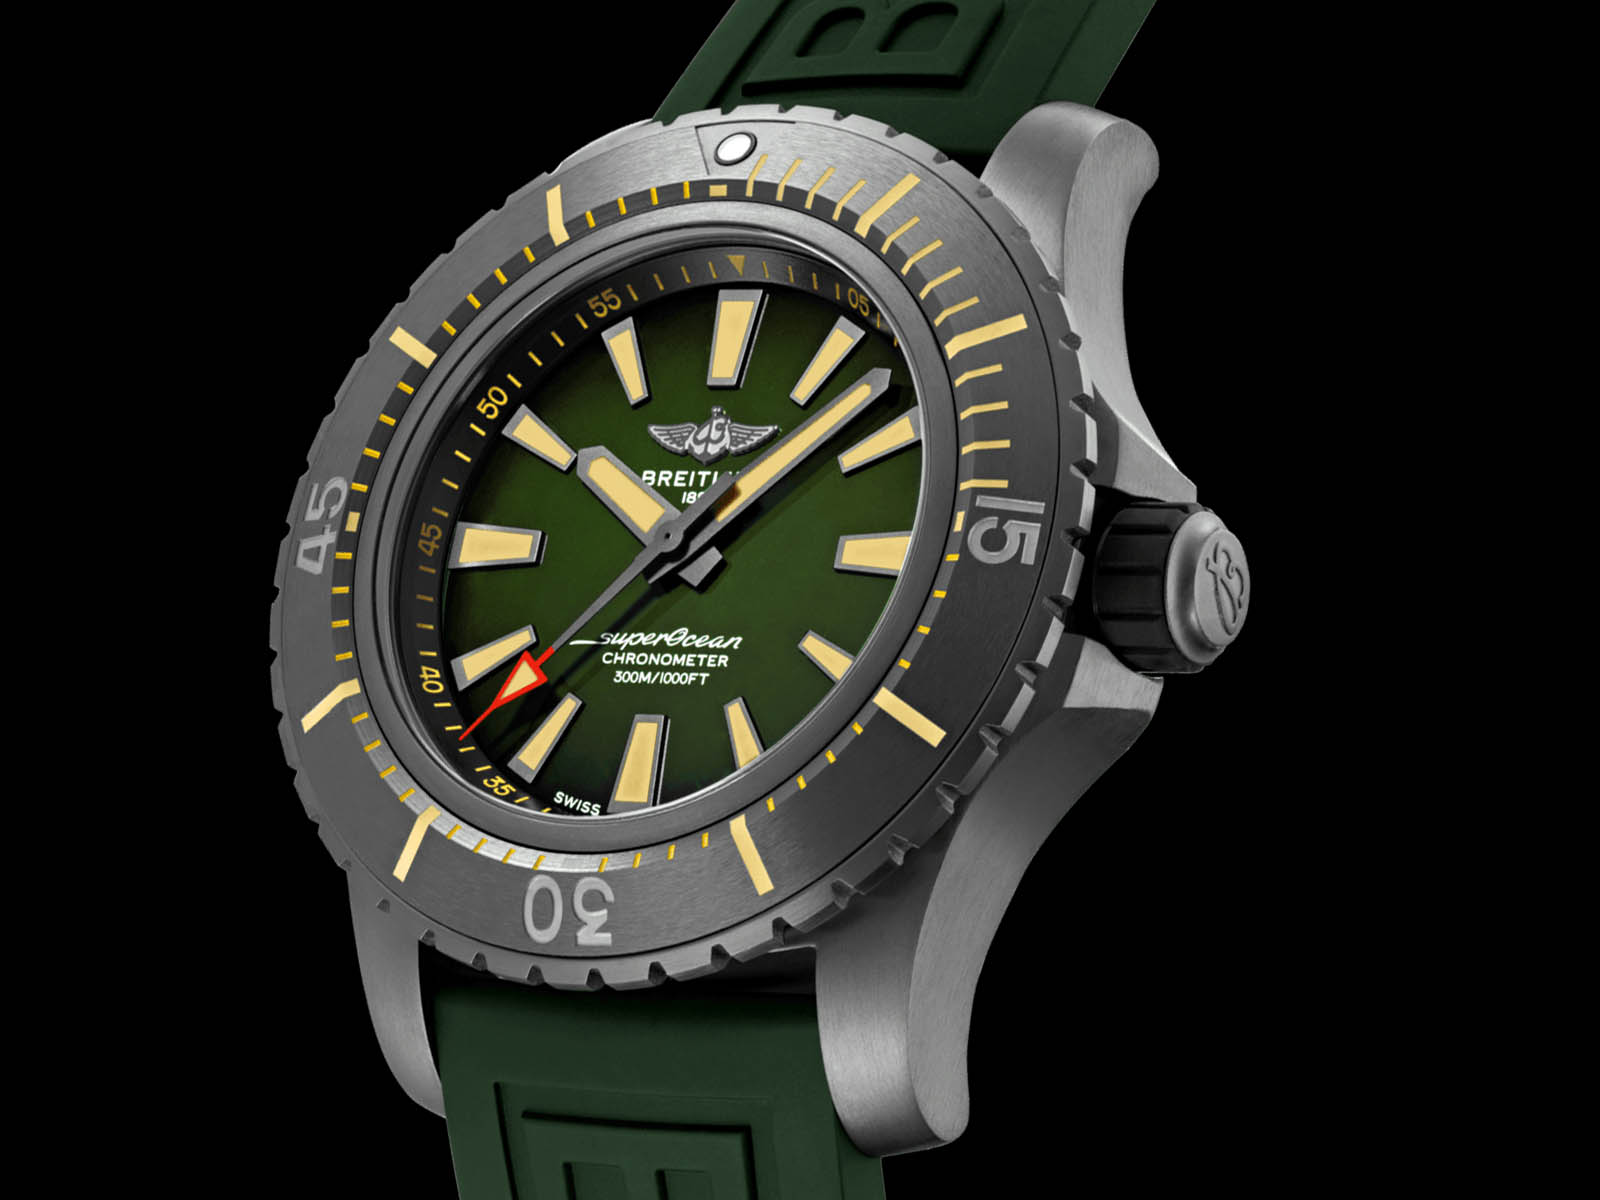 v17369241l1s2-breitling-superocean-automatic-48-boutique-edition-1.jpg